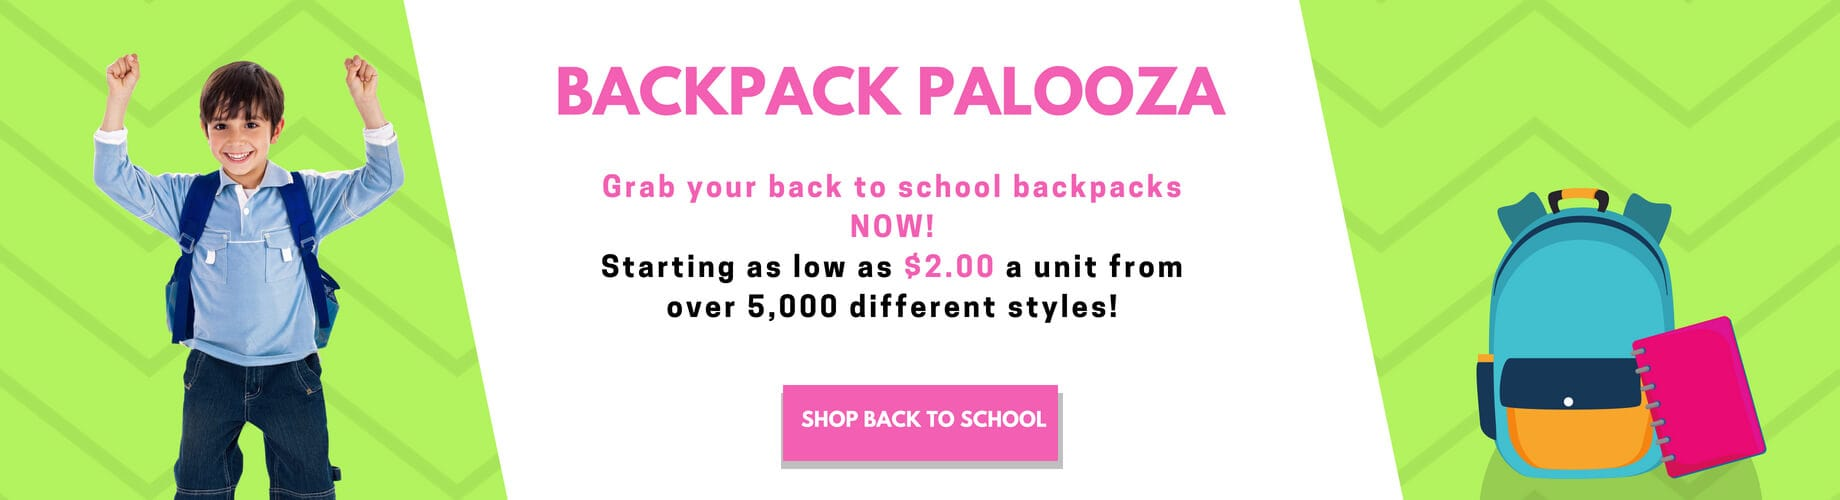 Wholesale Backpacks and bulk backpacks for school